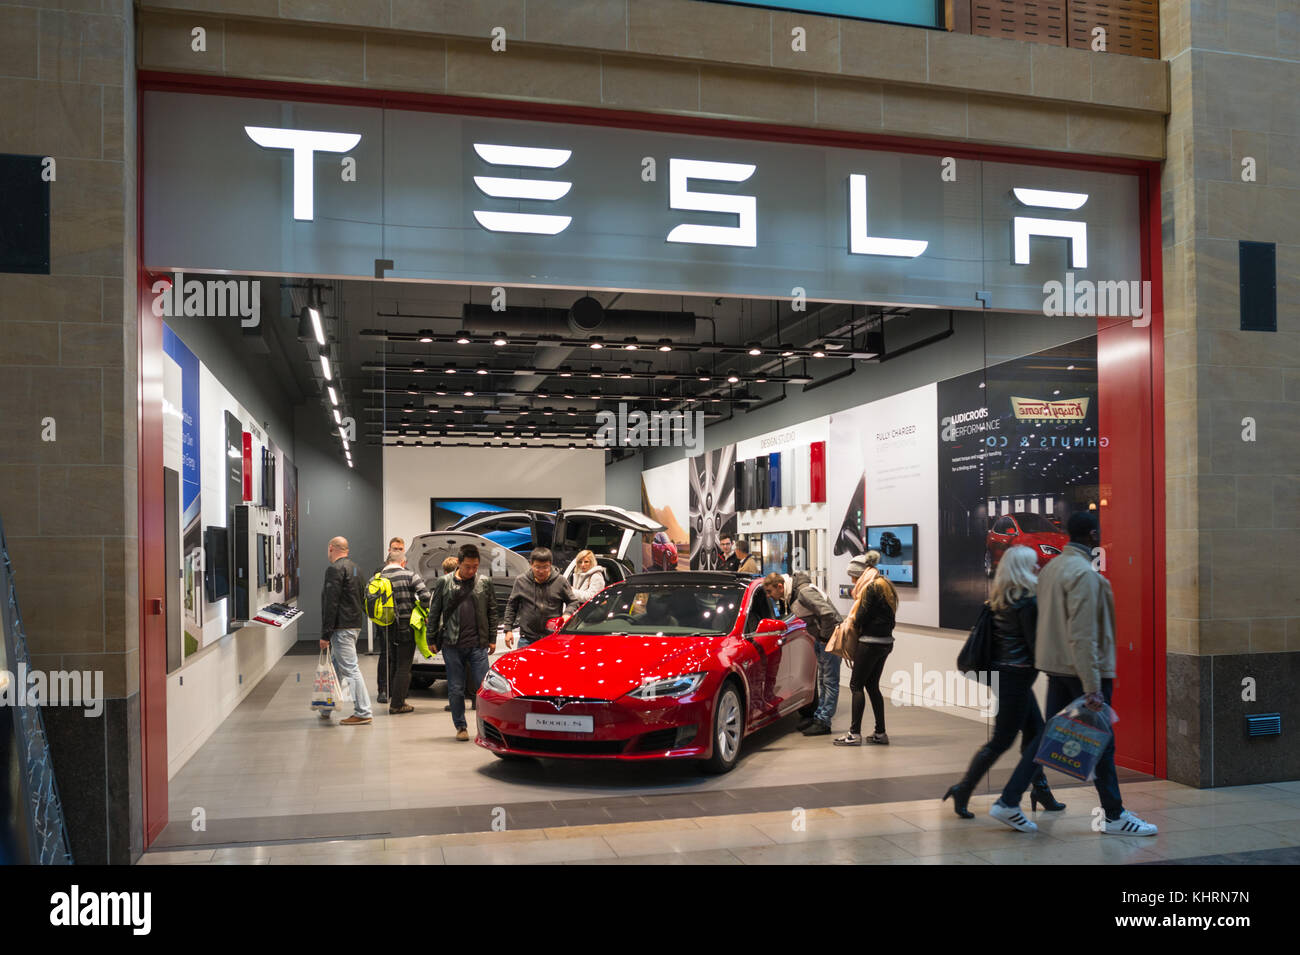 The Tesla Model S Electric car at the showroom in the Grand Arcade shopping Mall, Cambridge, England, UK. - Stock Image